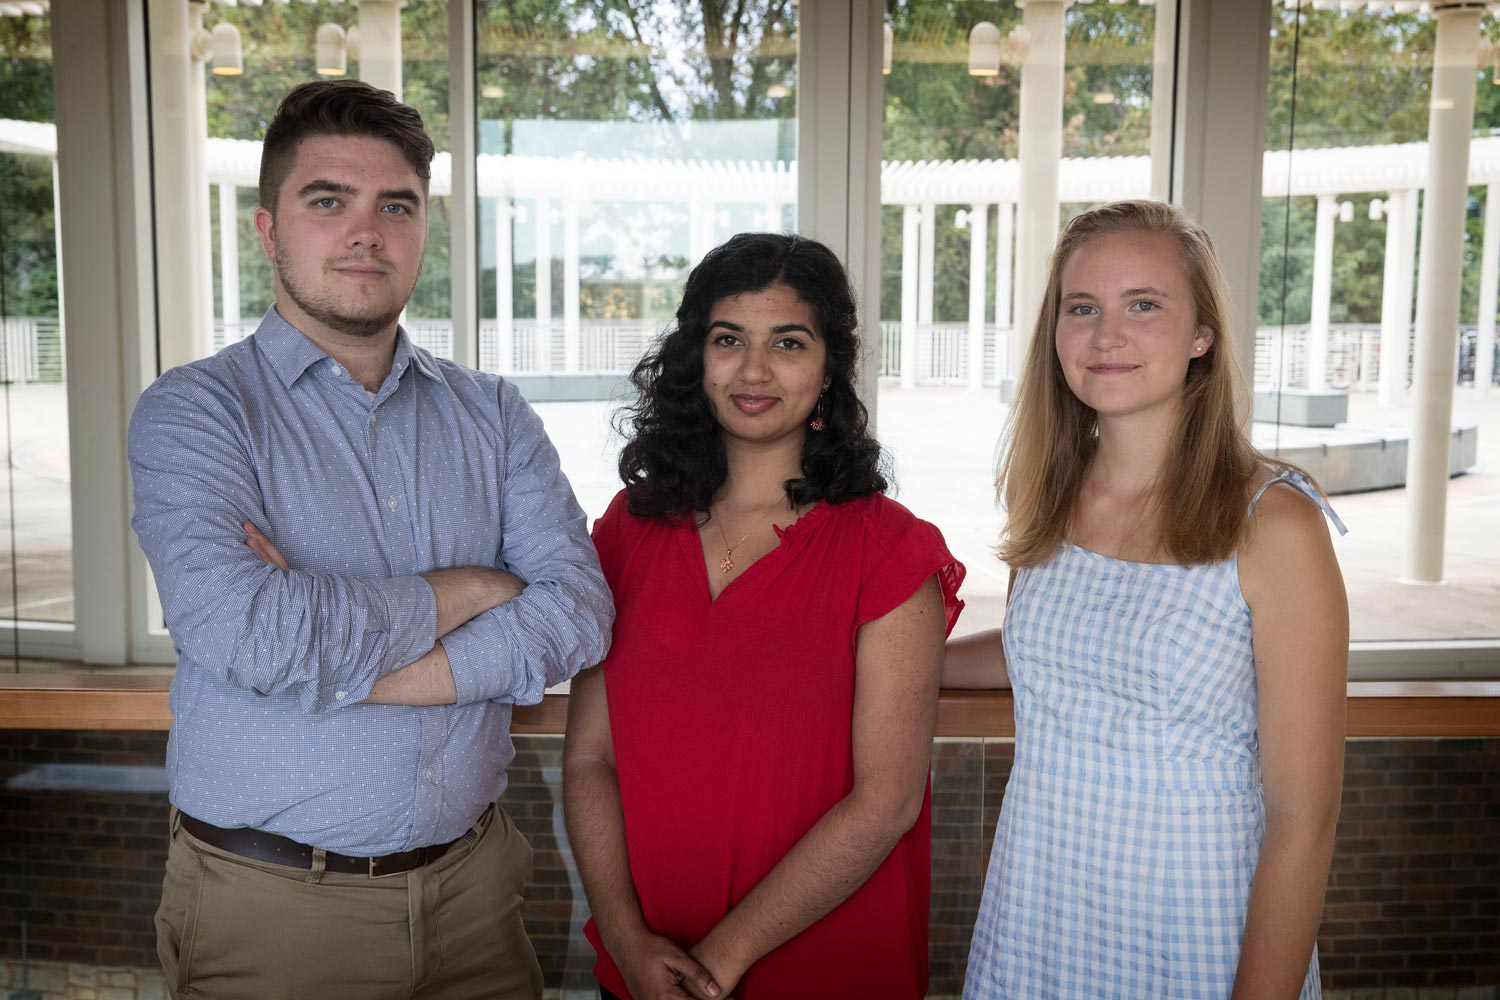 From left, Tyler Gaedecke, Anjali Kapil and Natalie LaRoe serve on the Student Health Advisory Committee.